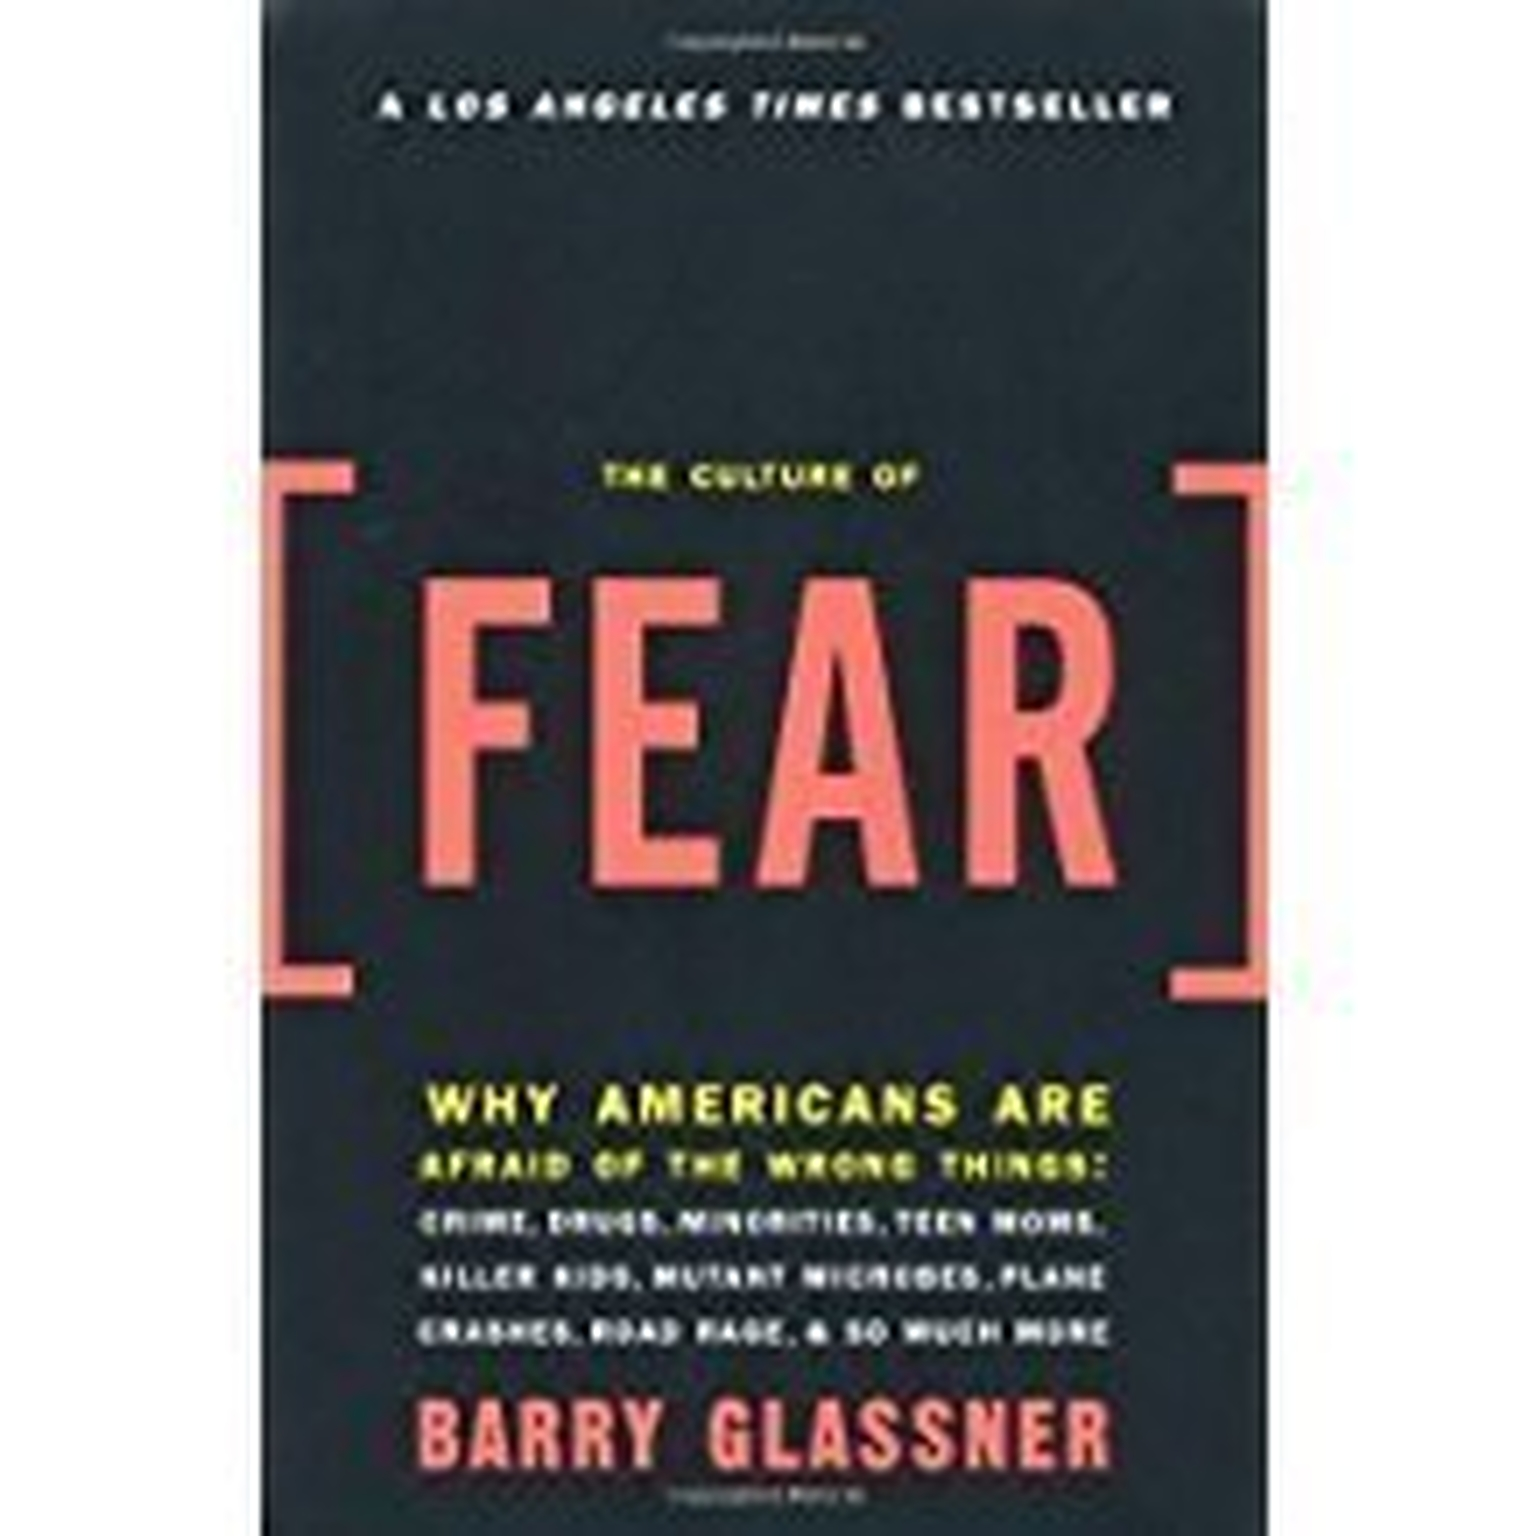 Printable The Culture of Fear: Why Americans Are Afraid of the Wrong Things Audiobook Cover Art